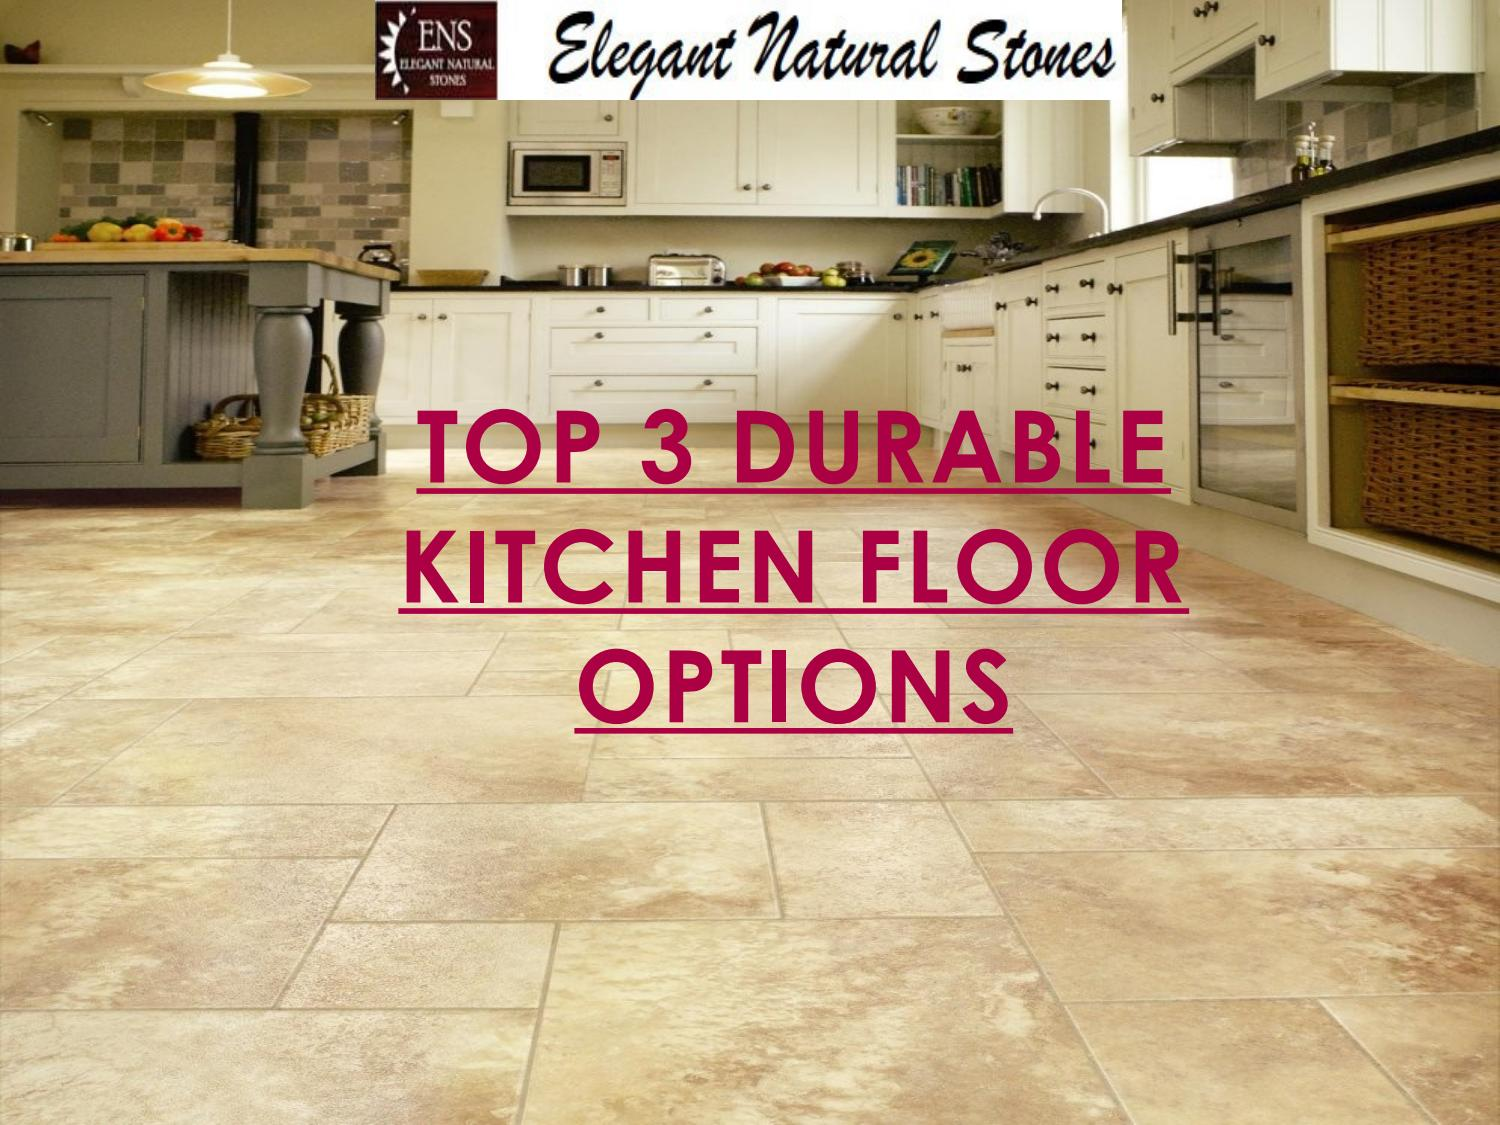 Top 3 Durable Kitchen Floor Options By Elegantnaturalstones Issuu